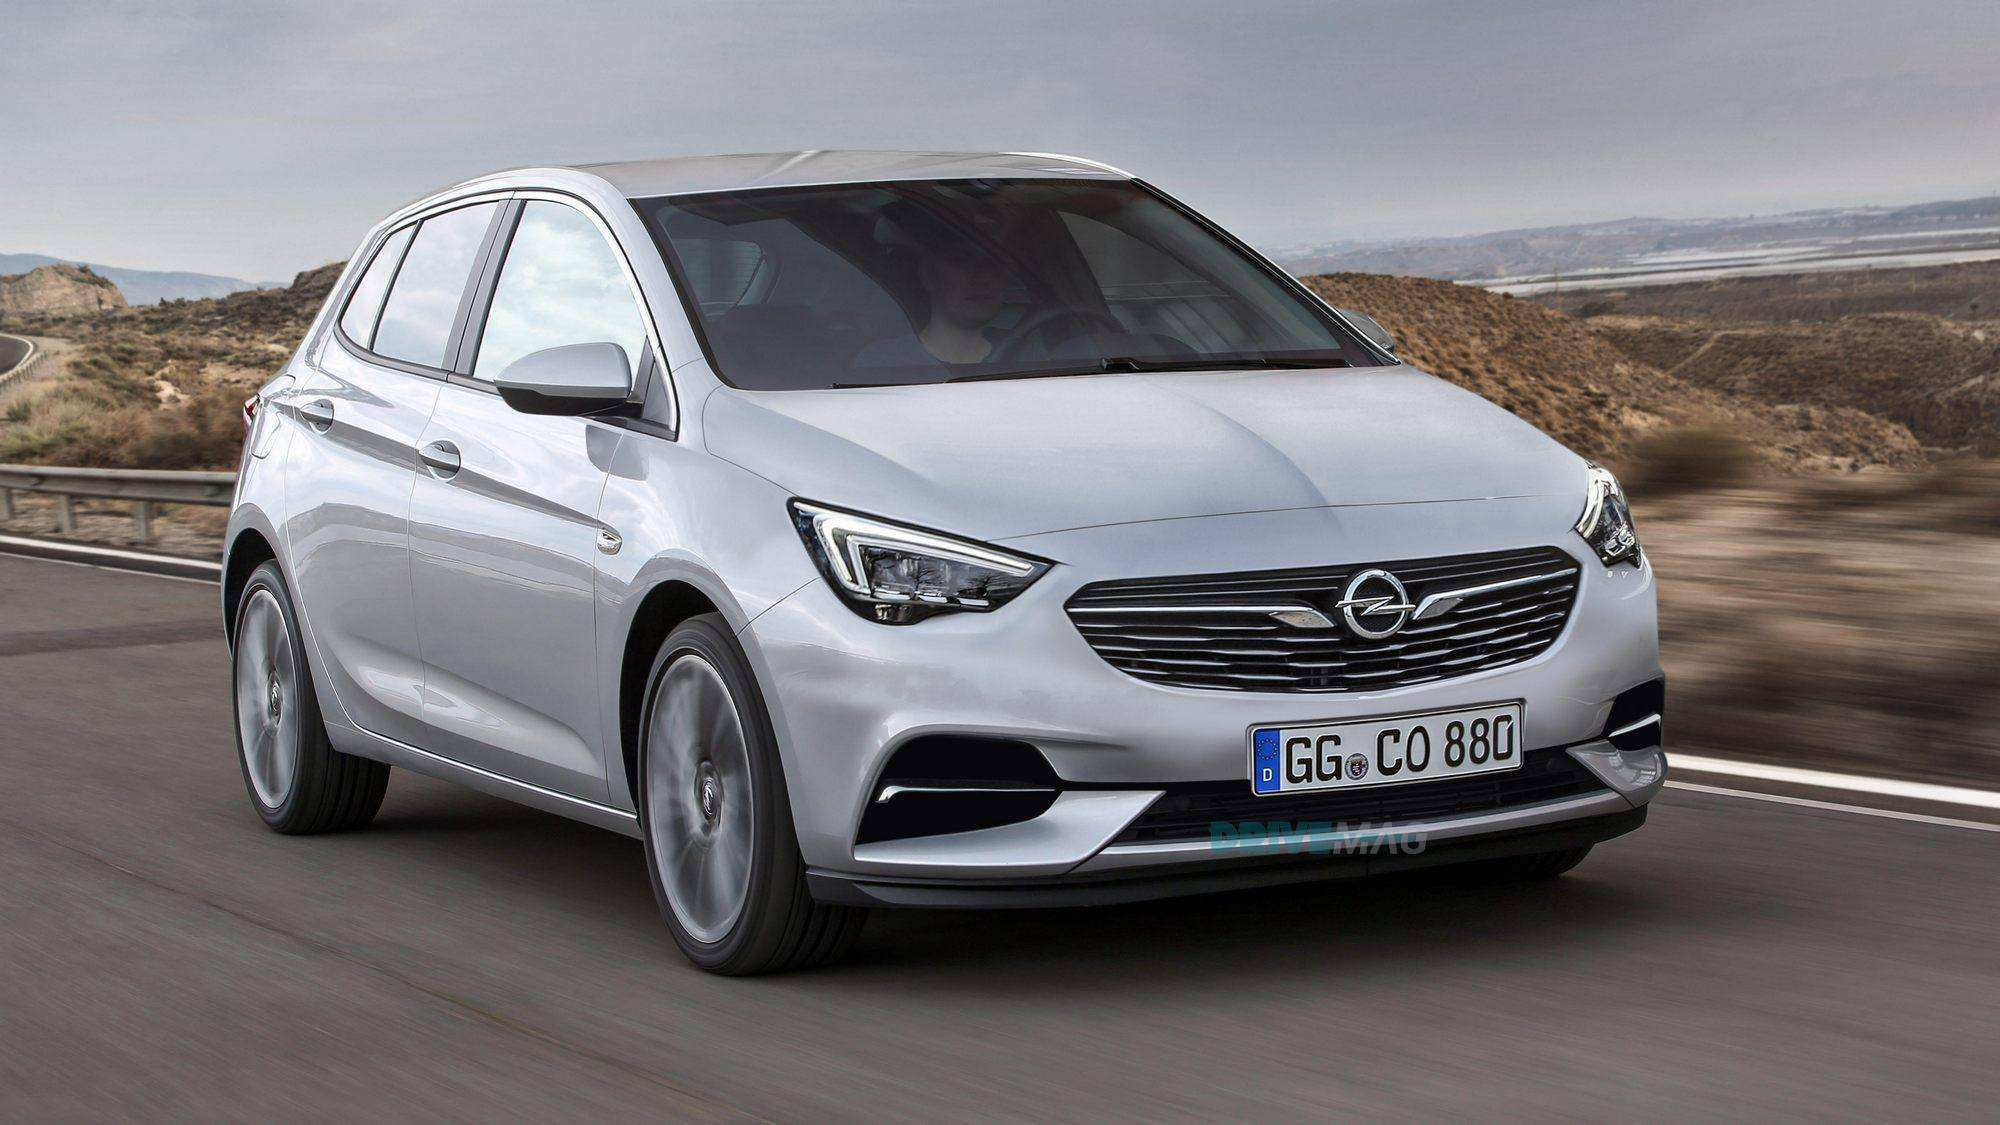 68 The Best Yeni Opel Corsa 2020 New Model And Performance